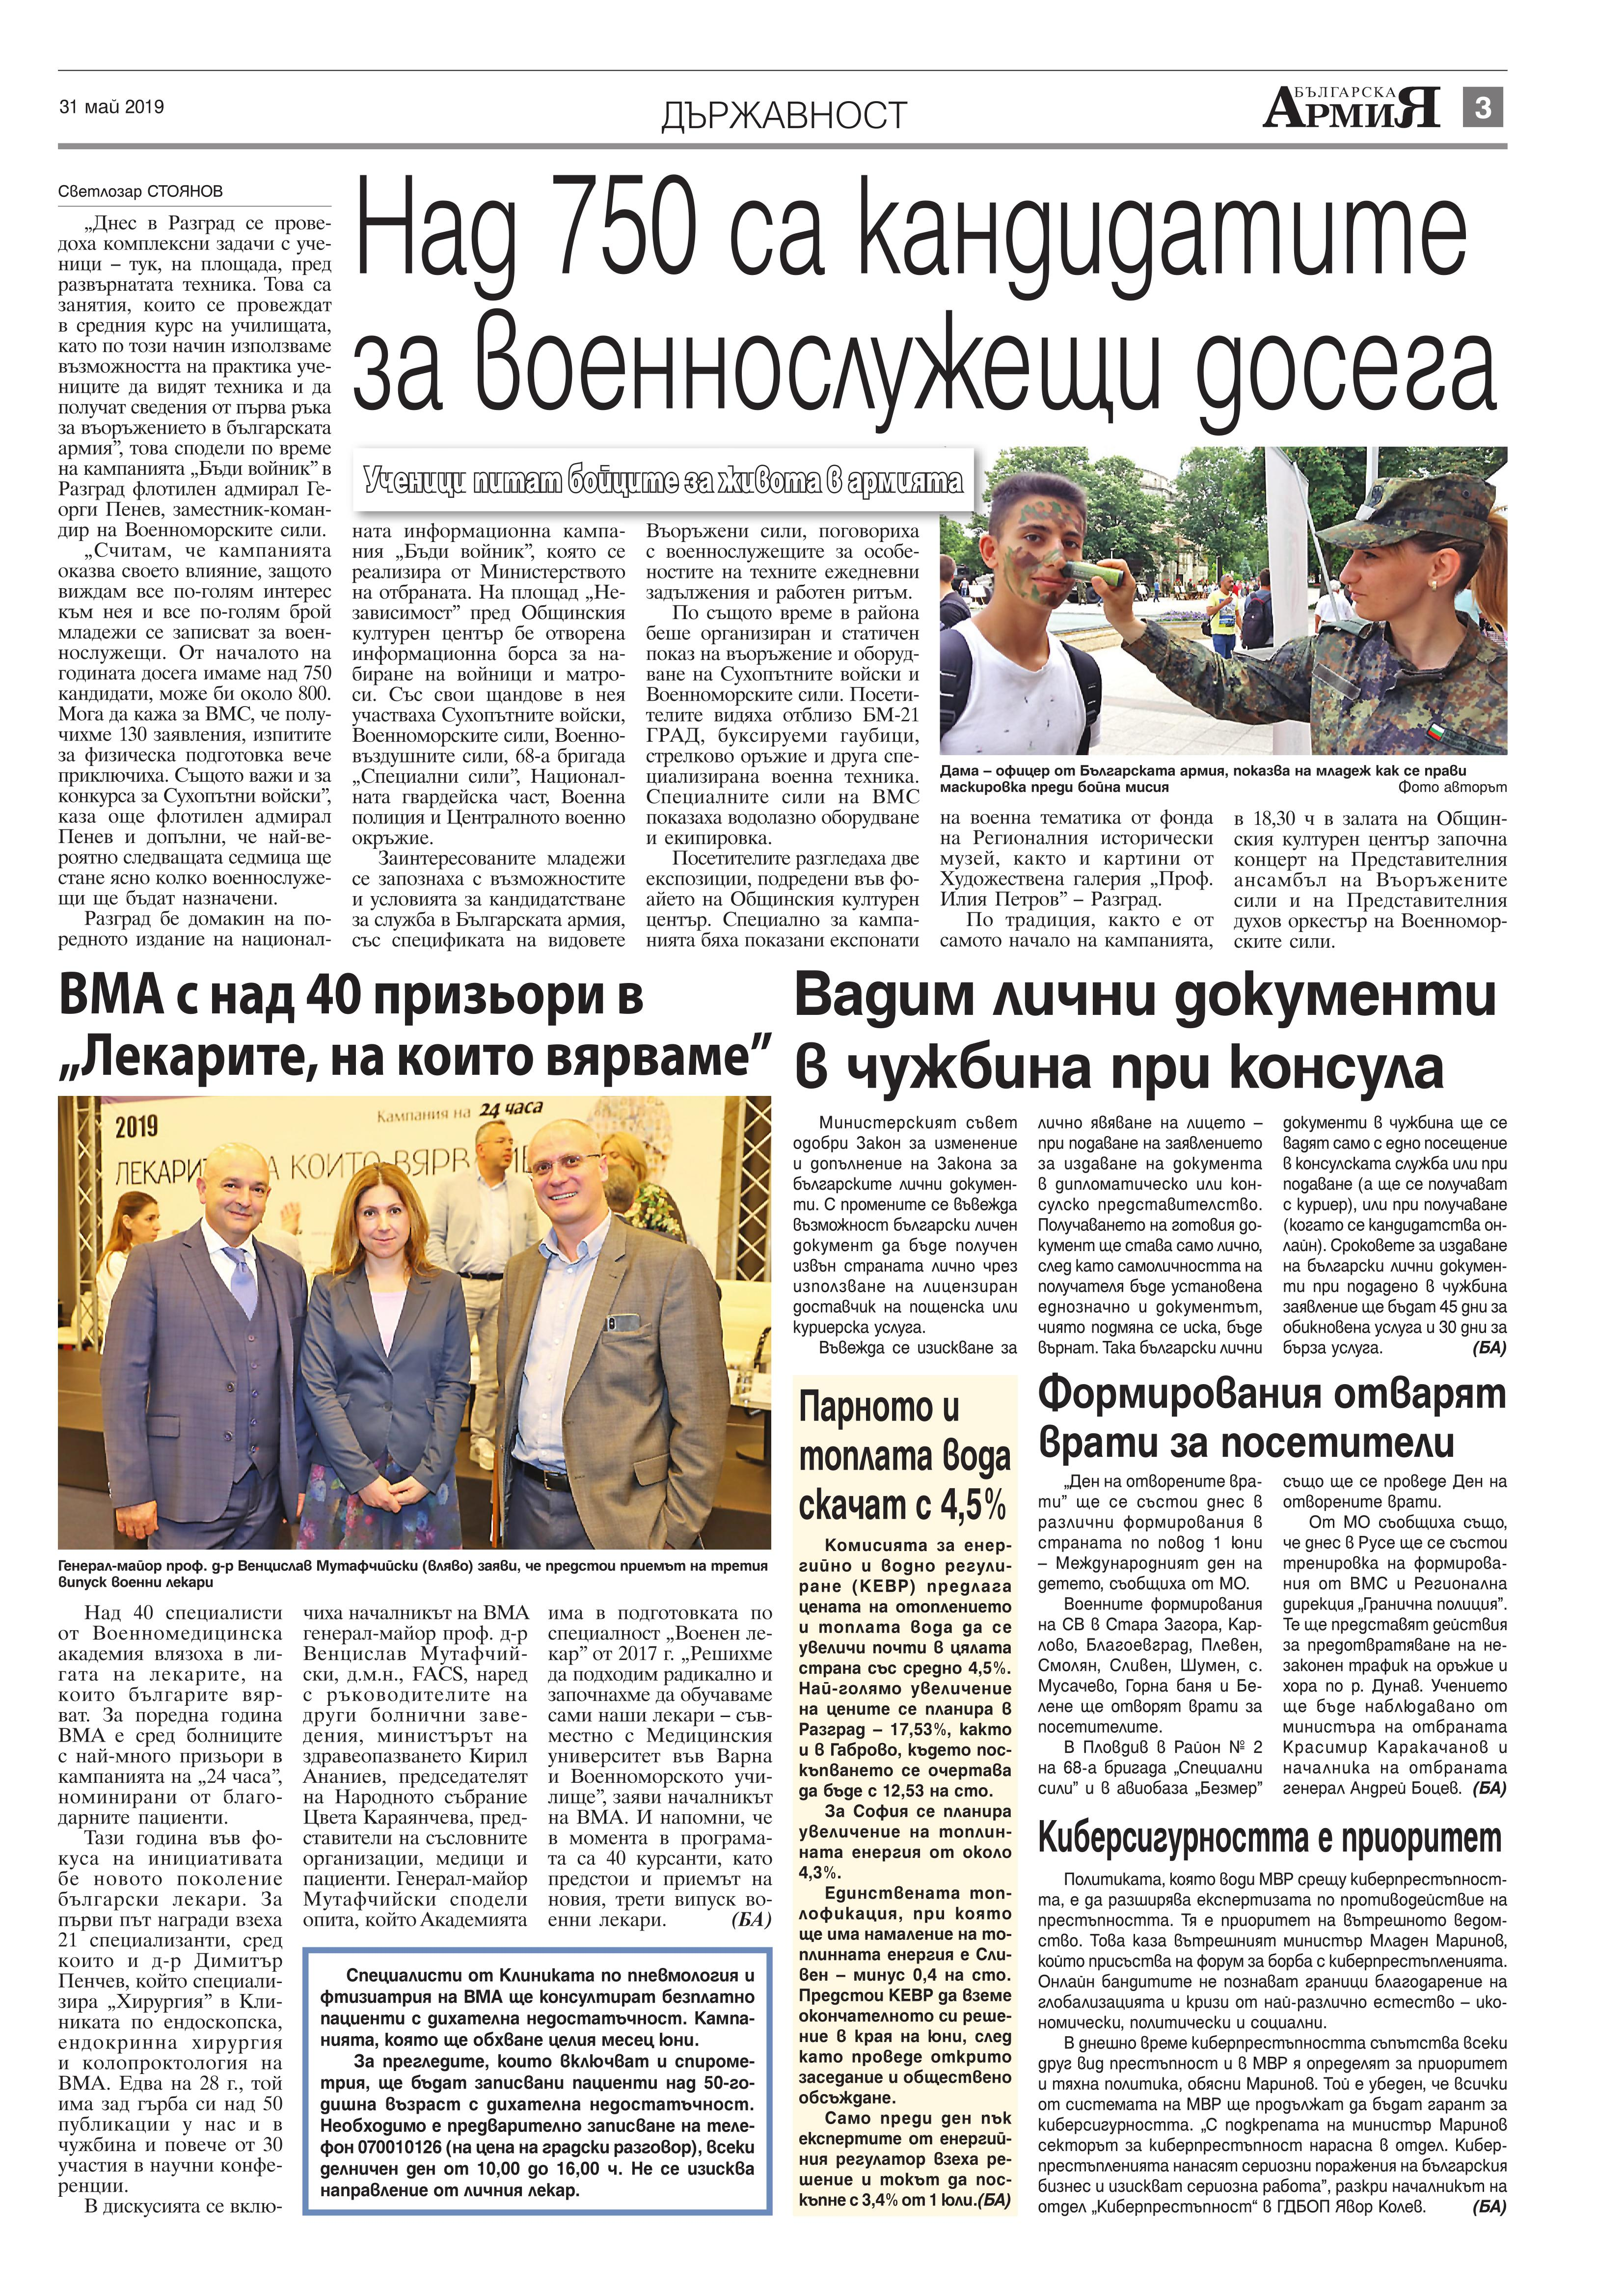 https://armymedia.bg/wp-content/uploads/2015/06/03.page1_-94.jpg